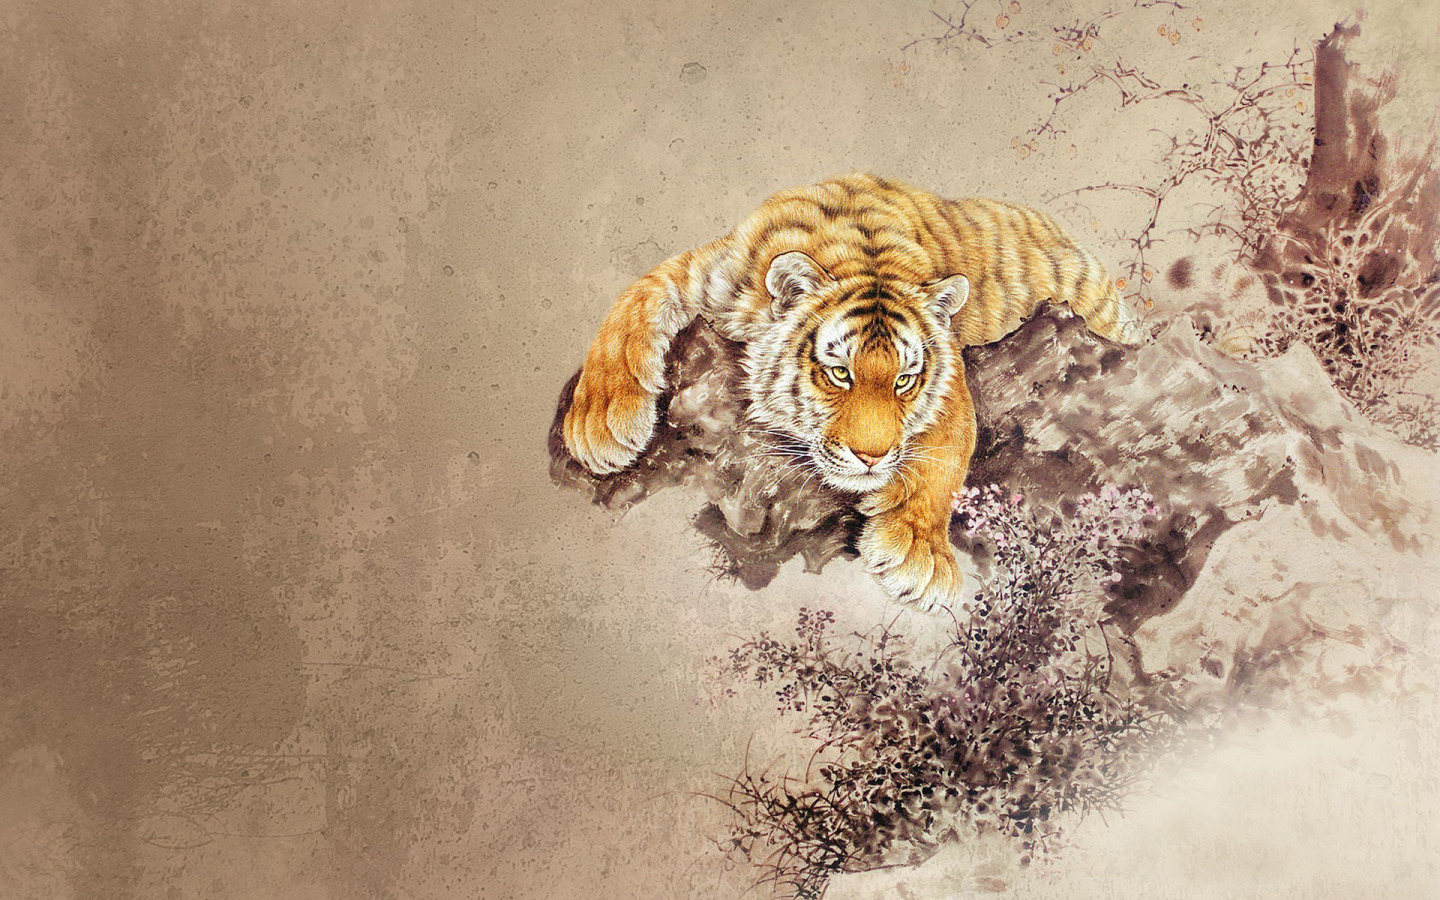 Drawn wallpaper tiger Wide widescreen  900 Wallpapers